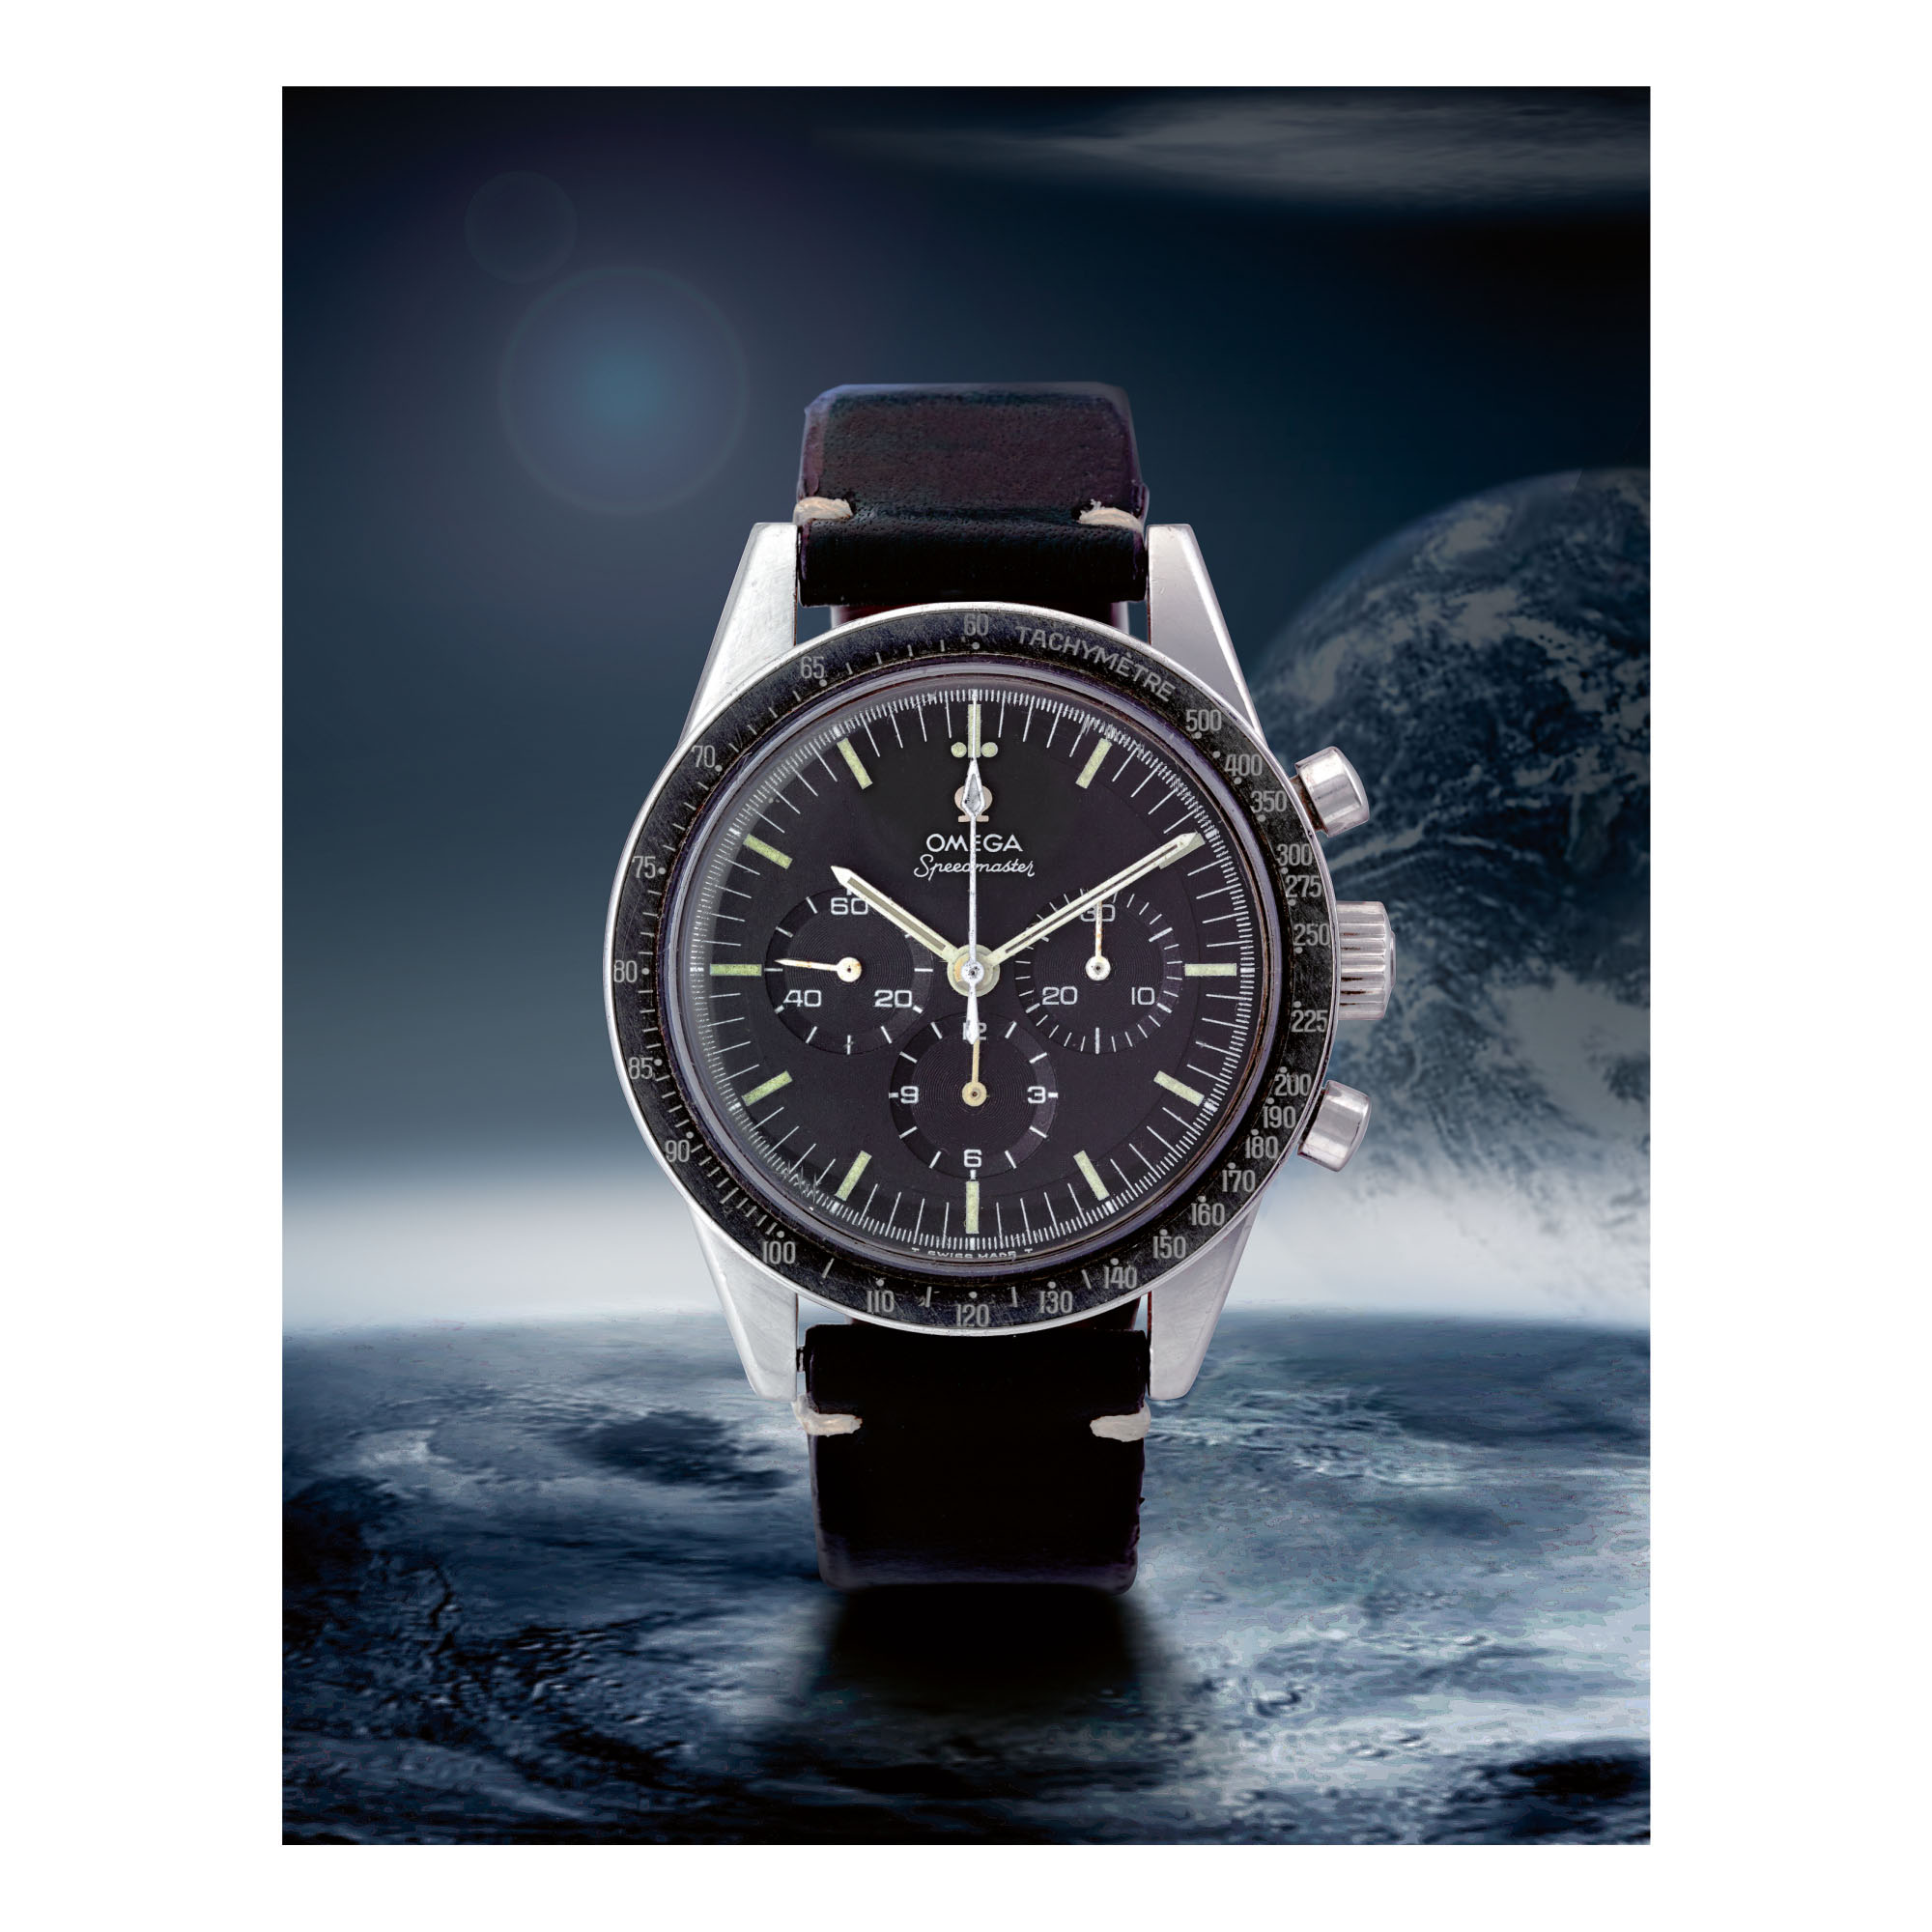 OMEGA | SPEEDMASTER REF 105.003-65 'FLIGHT QUALIFIED', A STAINLESS STEEL CHRONOGRAPH WRISTWATCH MADE IN 1966